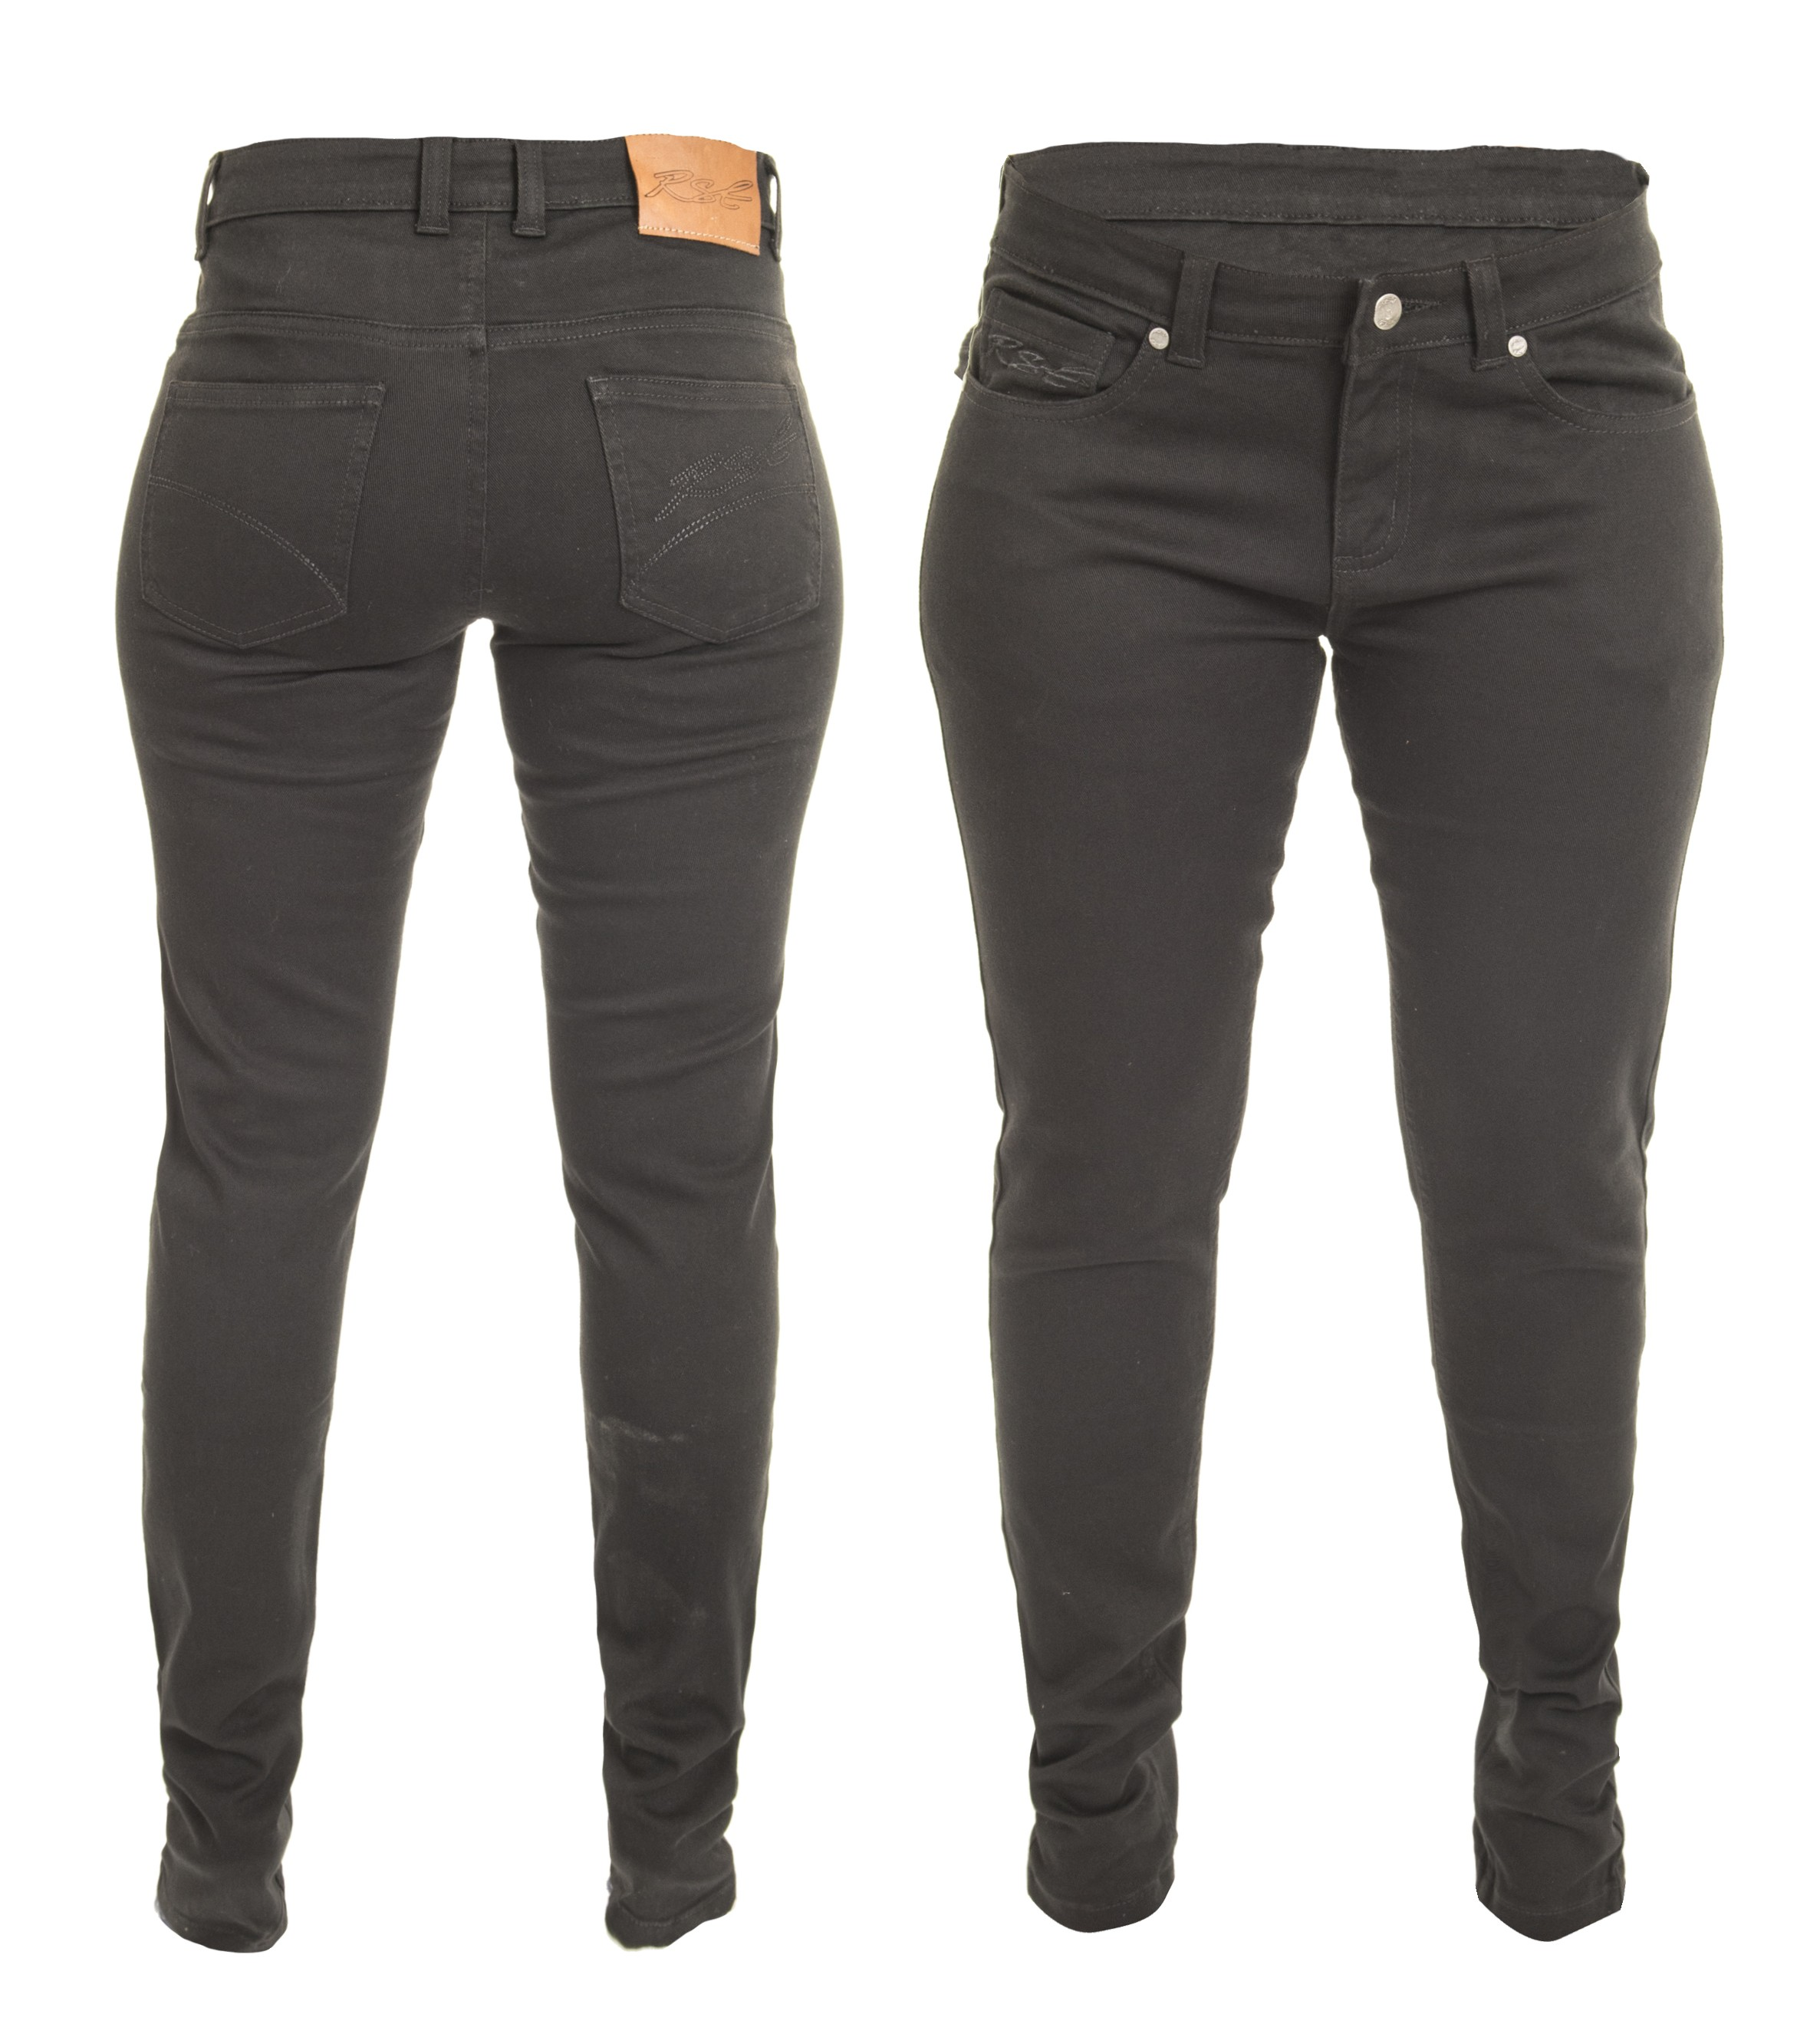 RST ladies motorbike casual jeans